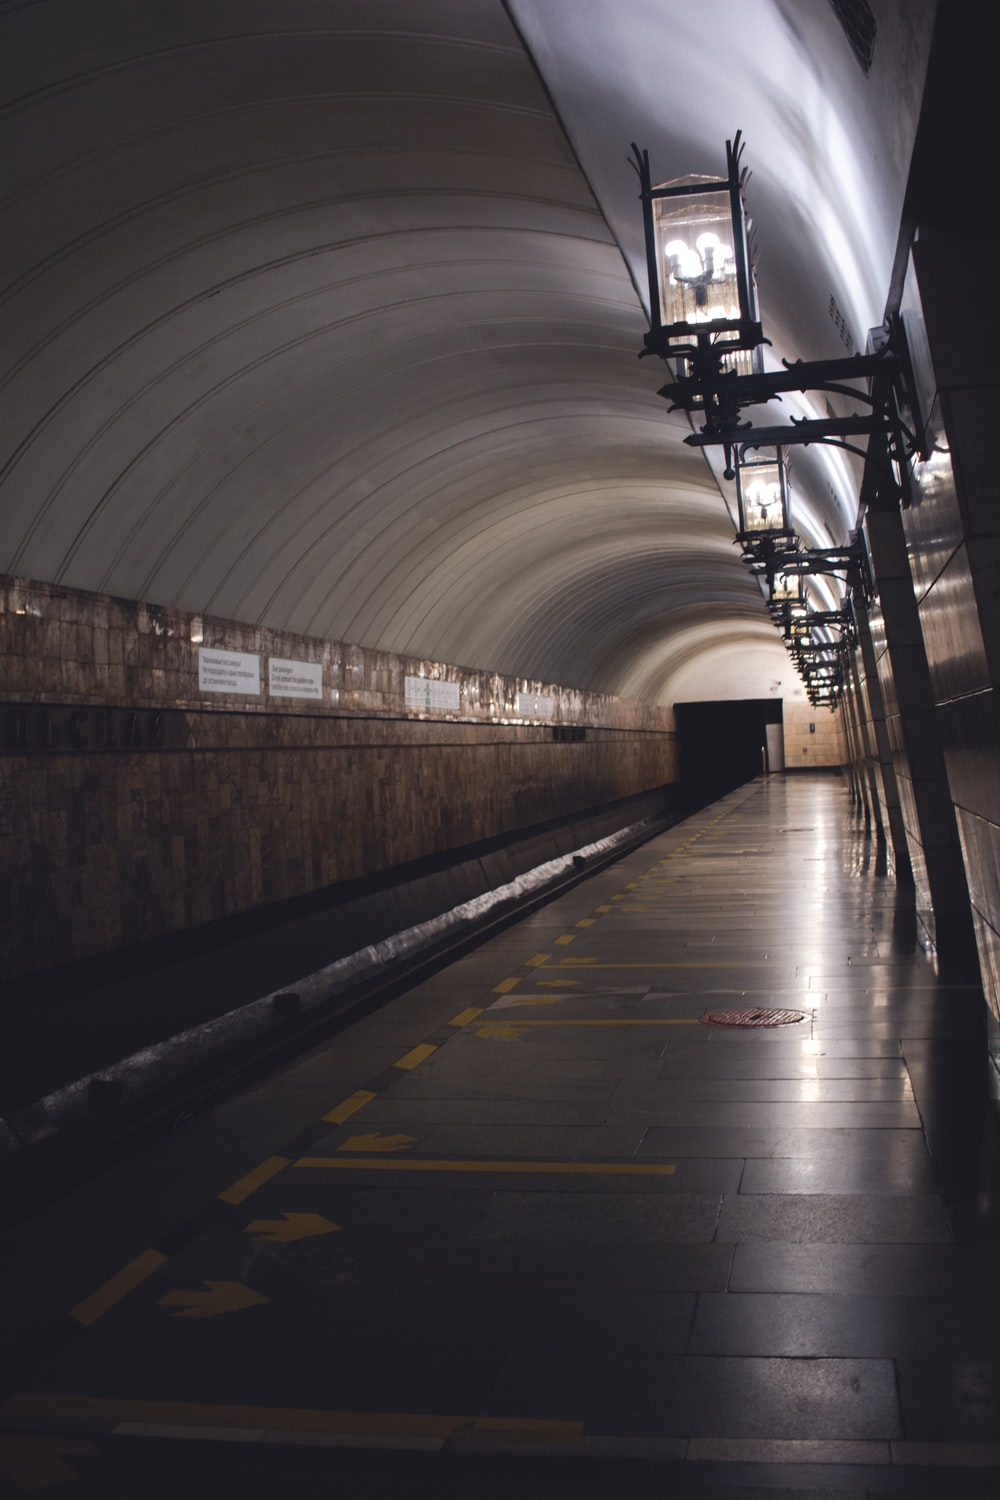 tunnel with lights turned on during daytime